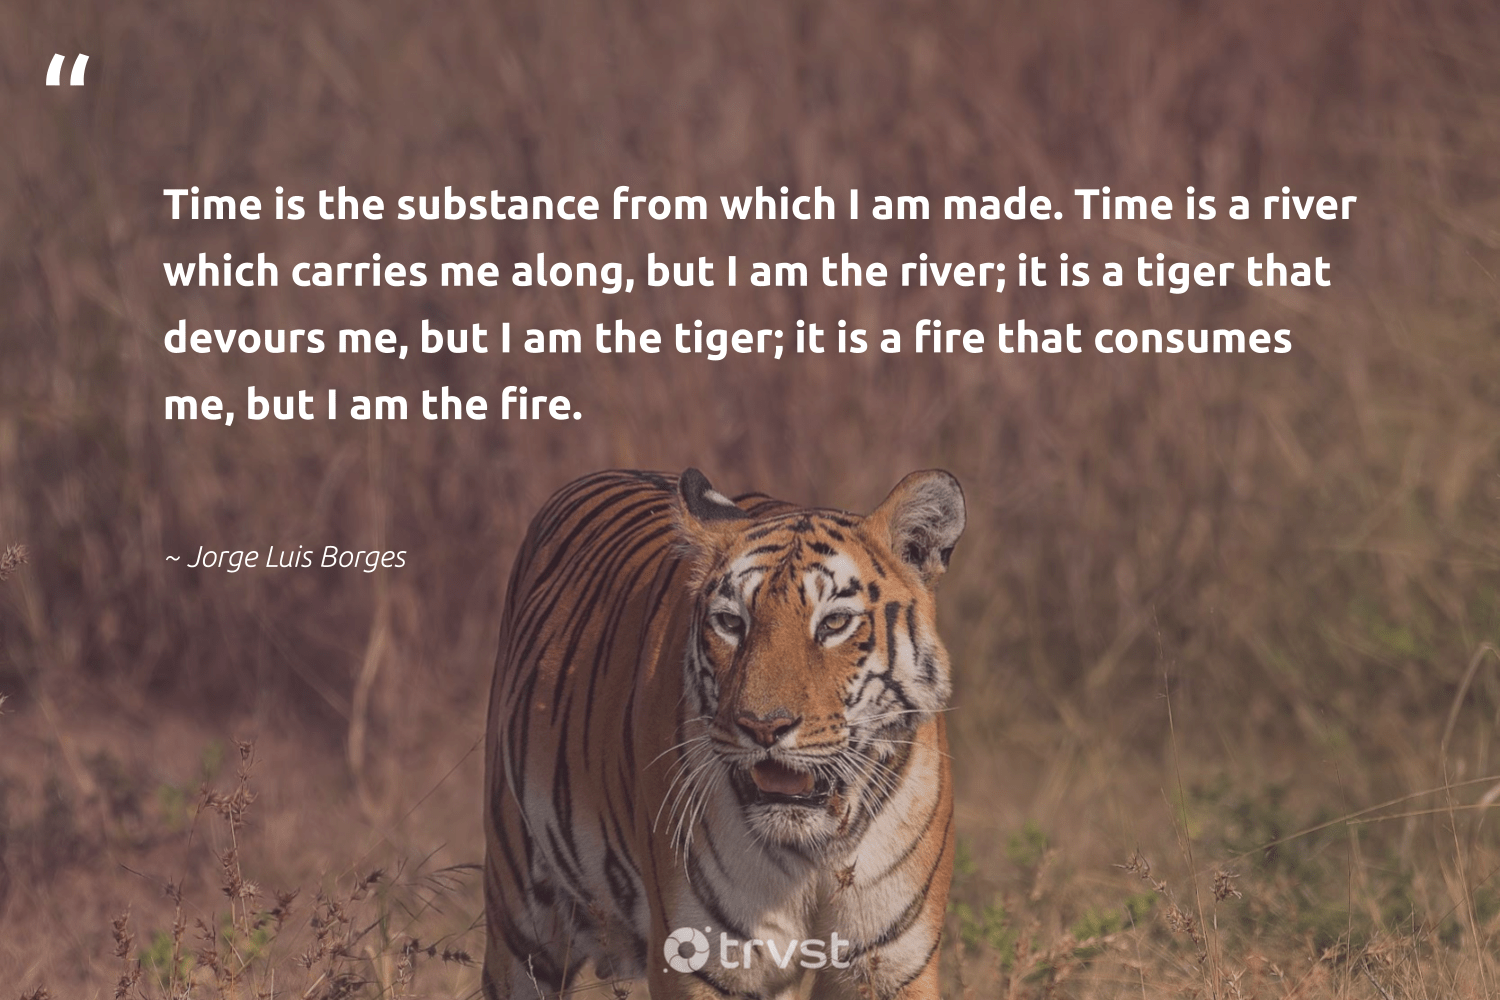 """Time is the substance from which I am made. Time is a river which carries me along, but I am the river; it is a tiger that devours me, but I am the tiger; it is a fire that consumes me, but I am the fire.""  - Jorge Luis Borges #trvst #quotes #river #tiger #water #protectnature #environmentallyfriendly #collectiveaction #oceanpollution #splendidanimals #volunteer #bethechange"